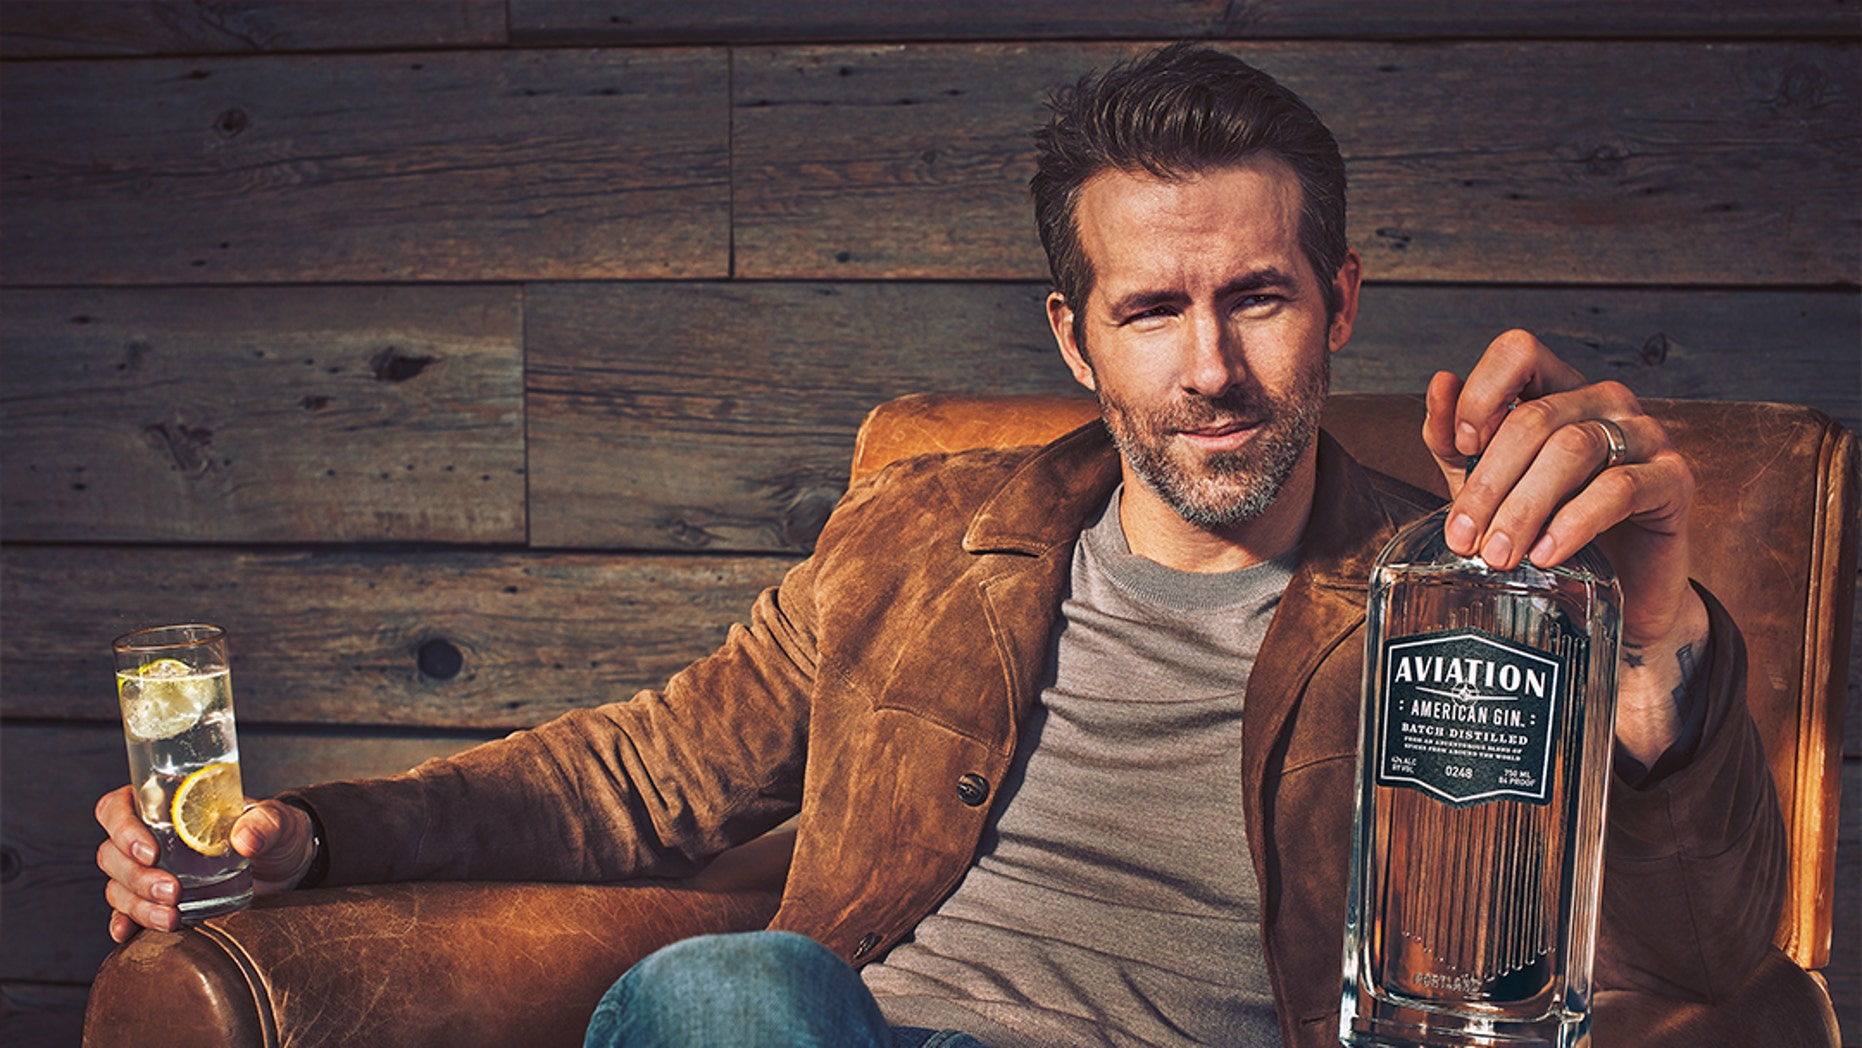 The Deadpool star has taken the reins of a gin company.